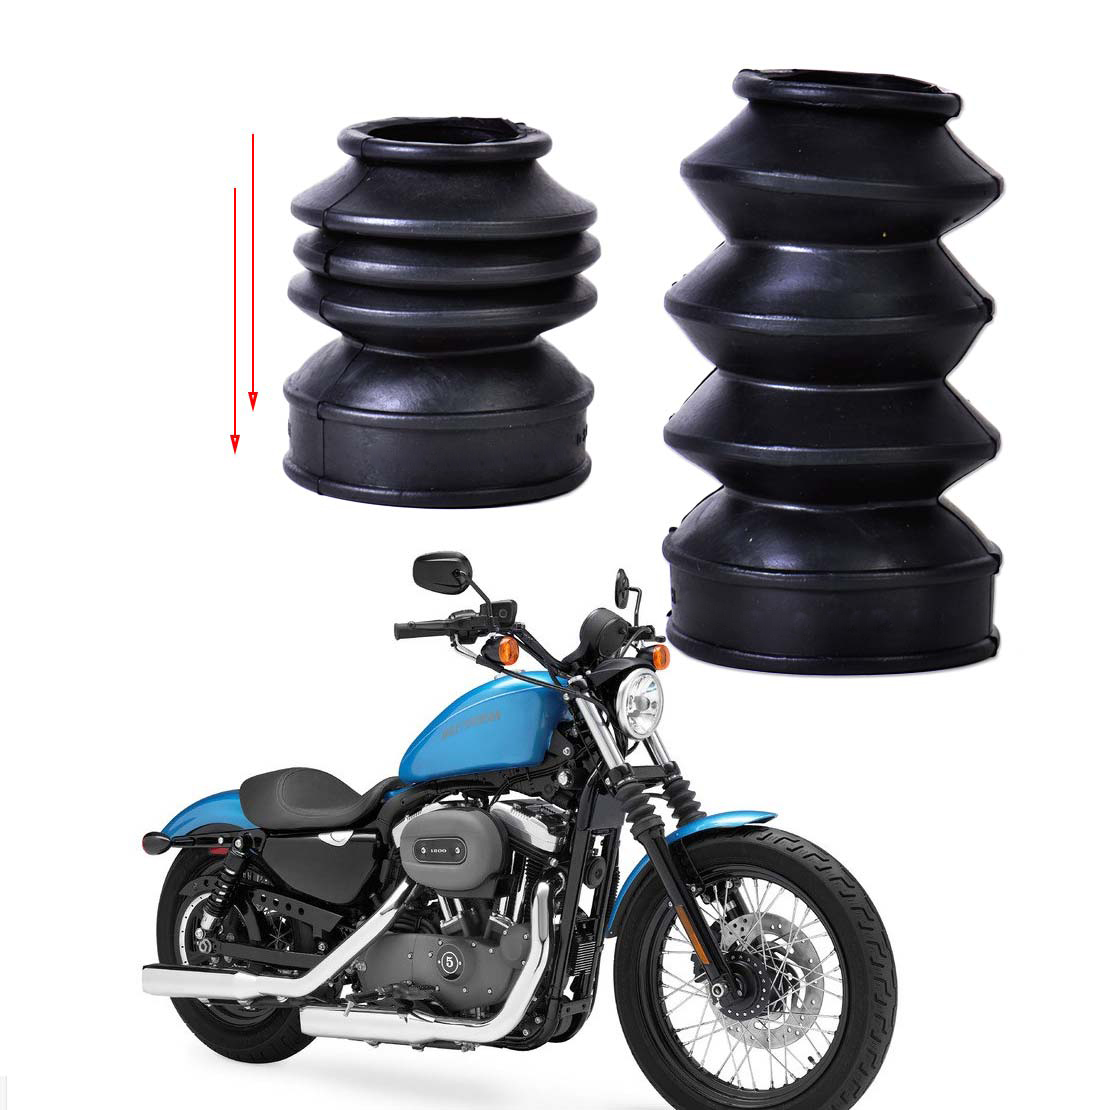 Pair Motorcycle Front Rubber Fork Dirt Cover Gaiter Gator Boot Cap Shock Fits For Harley Sportster Dyna FX XL883 1200 N C L V 48<br><br>Aliexpress